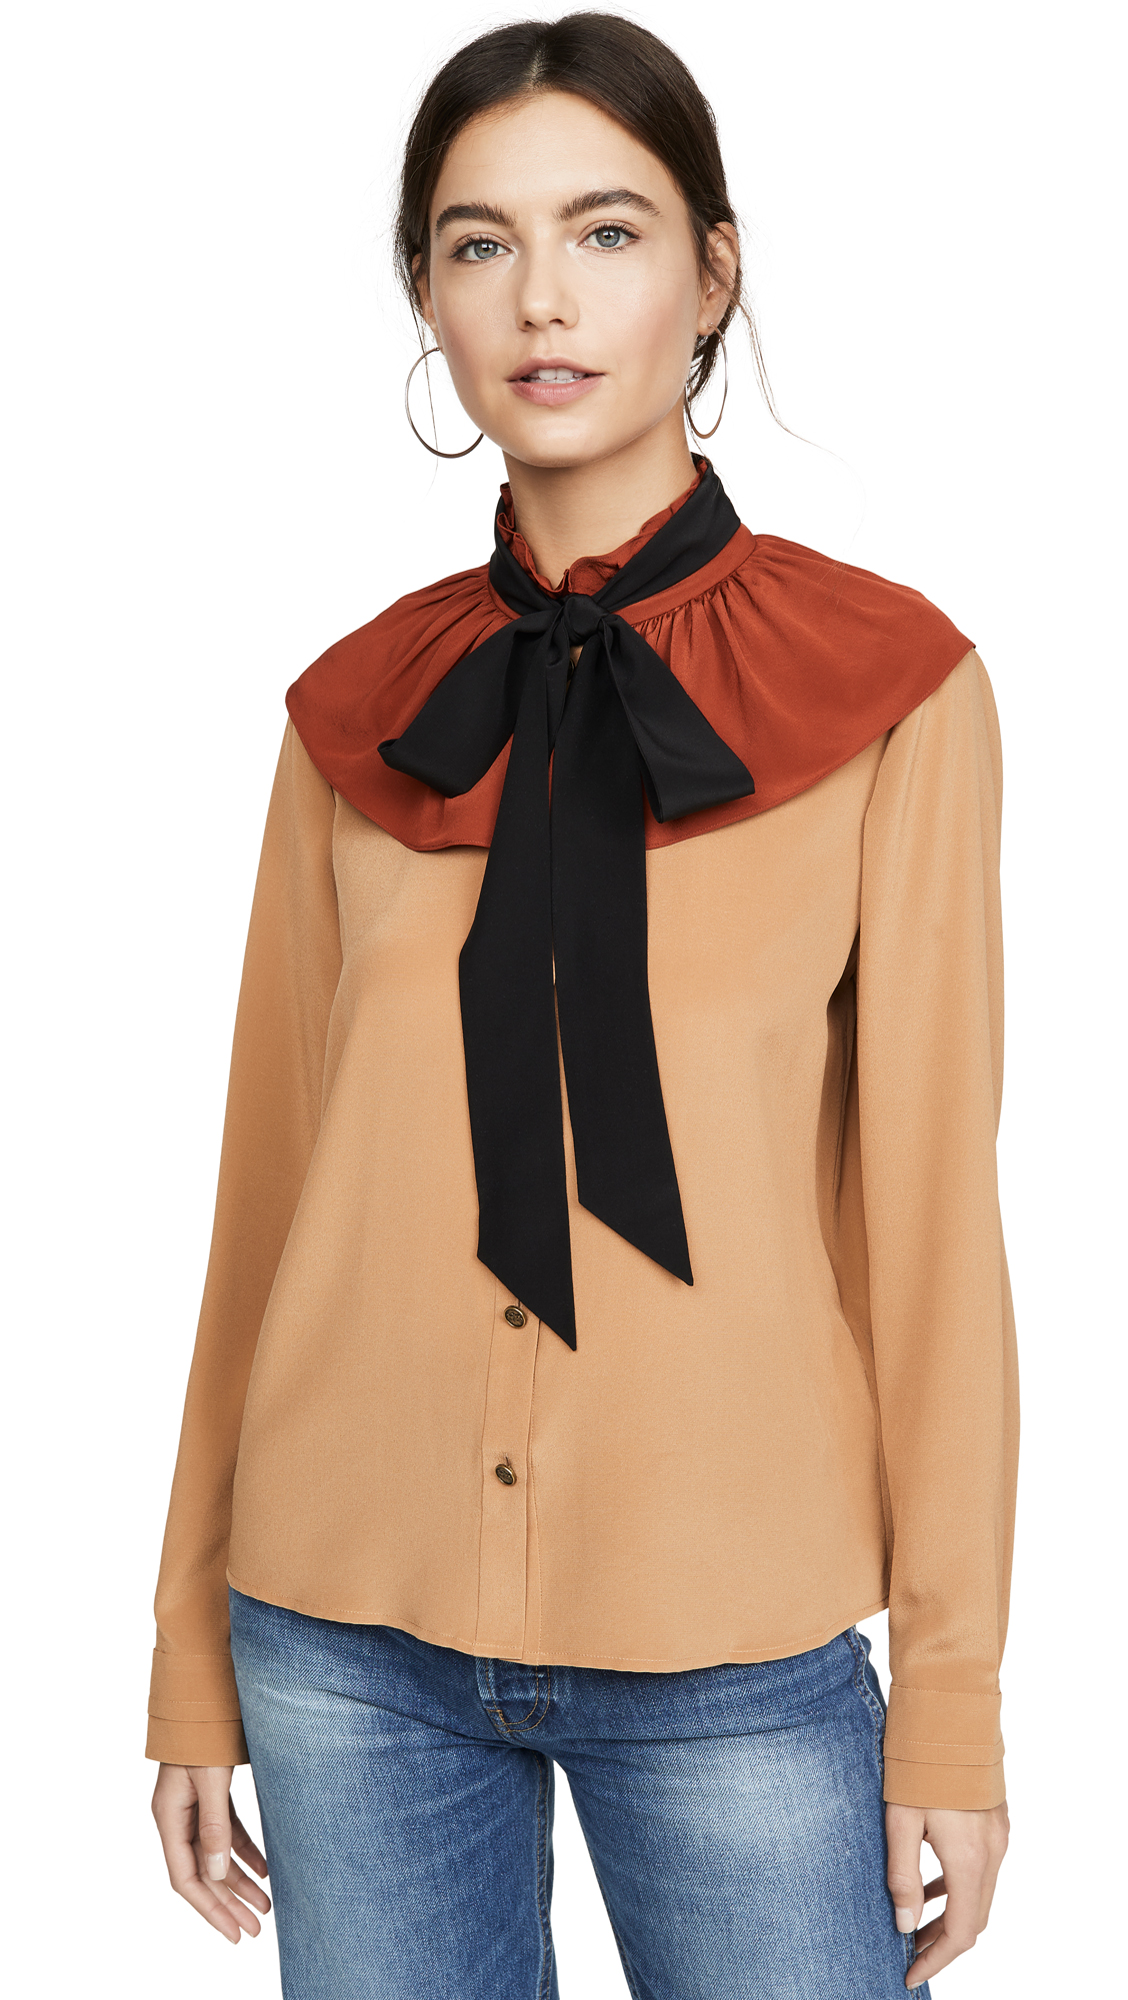 Coach 1941 Gathered Collar Blouse - 50% Off Sale